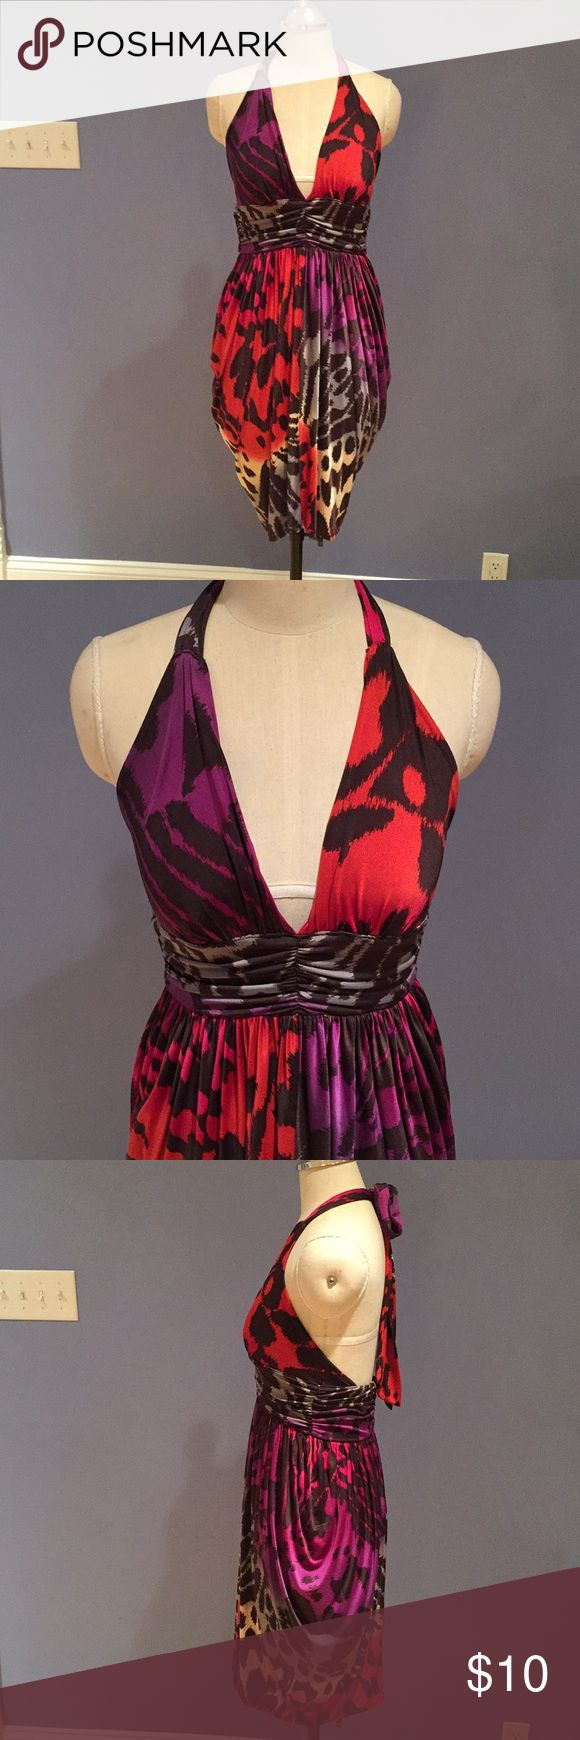 Party Dress Halter Backless Red Purple Black Sexy Sexy party dress, halter, backless, bold multi-color print, slinky material. Brand is Forever 21. Size M. Forever 21 Dresses Backless